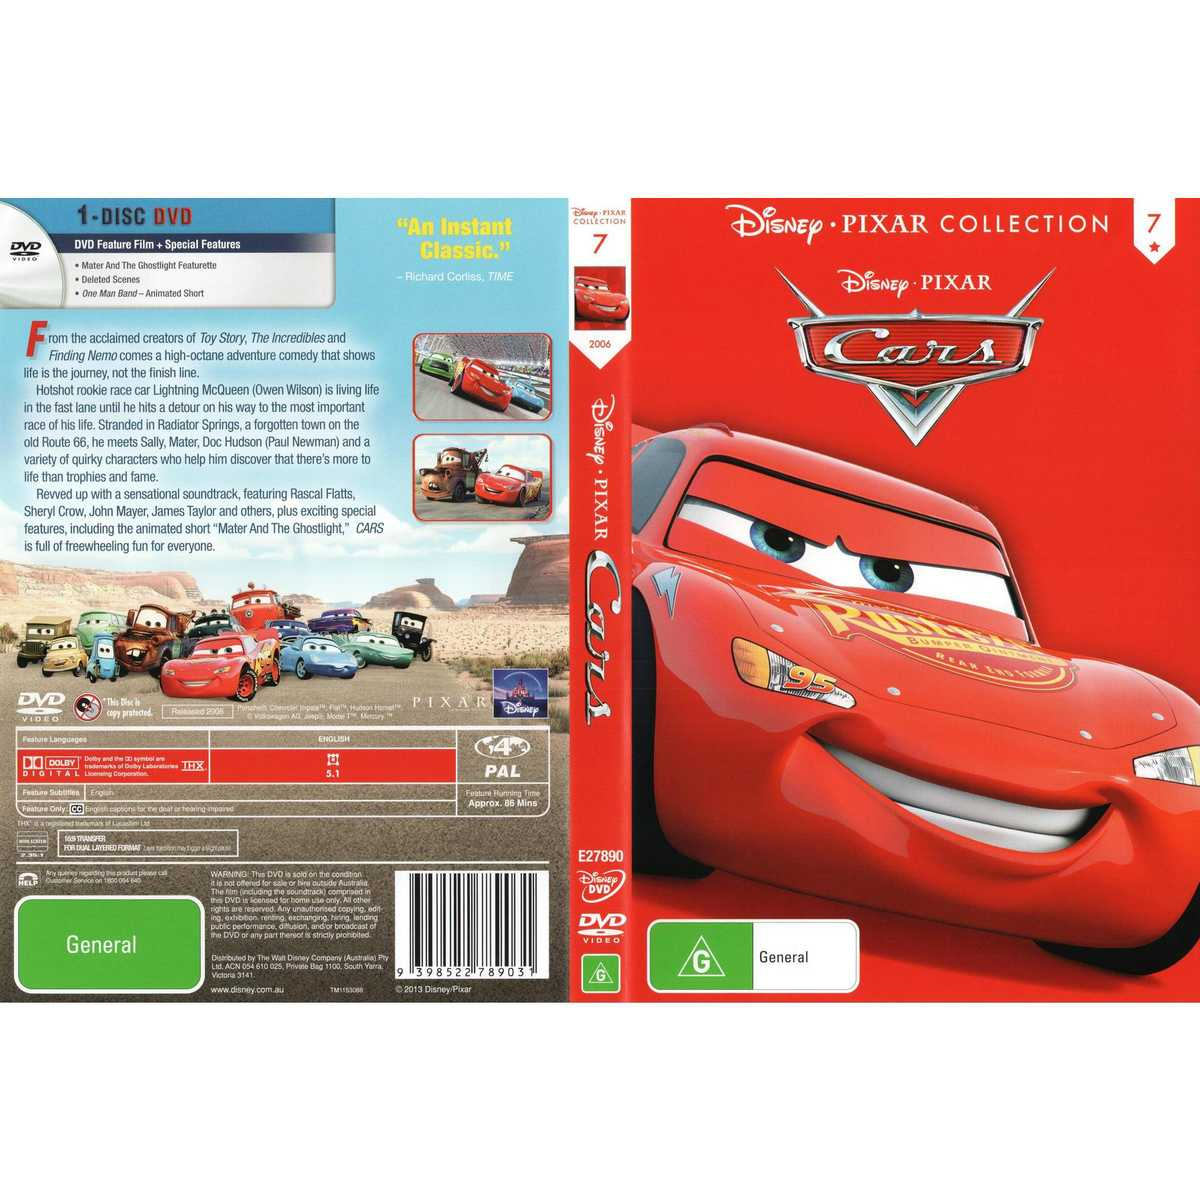 Big W Toy Cars Cars Disney Pixar Collection Dvd Big W